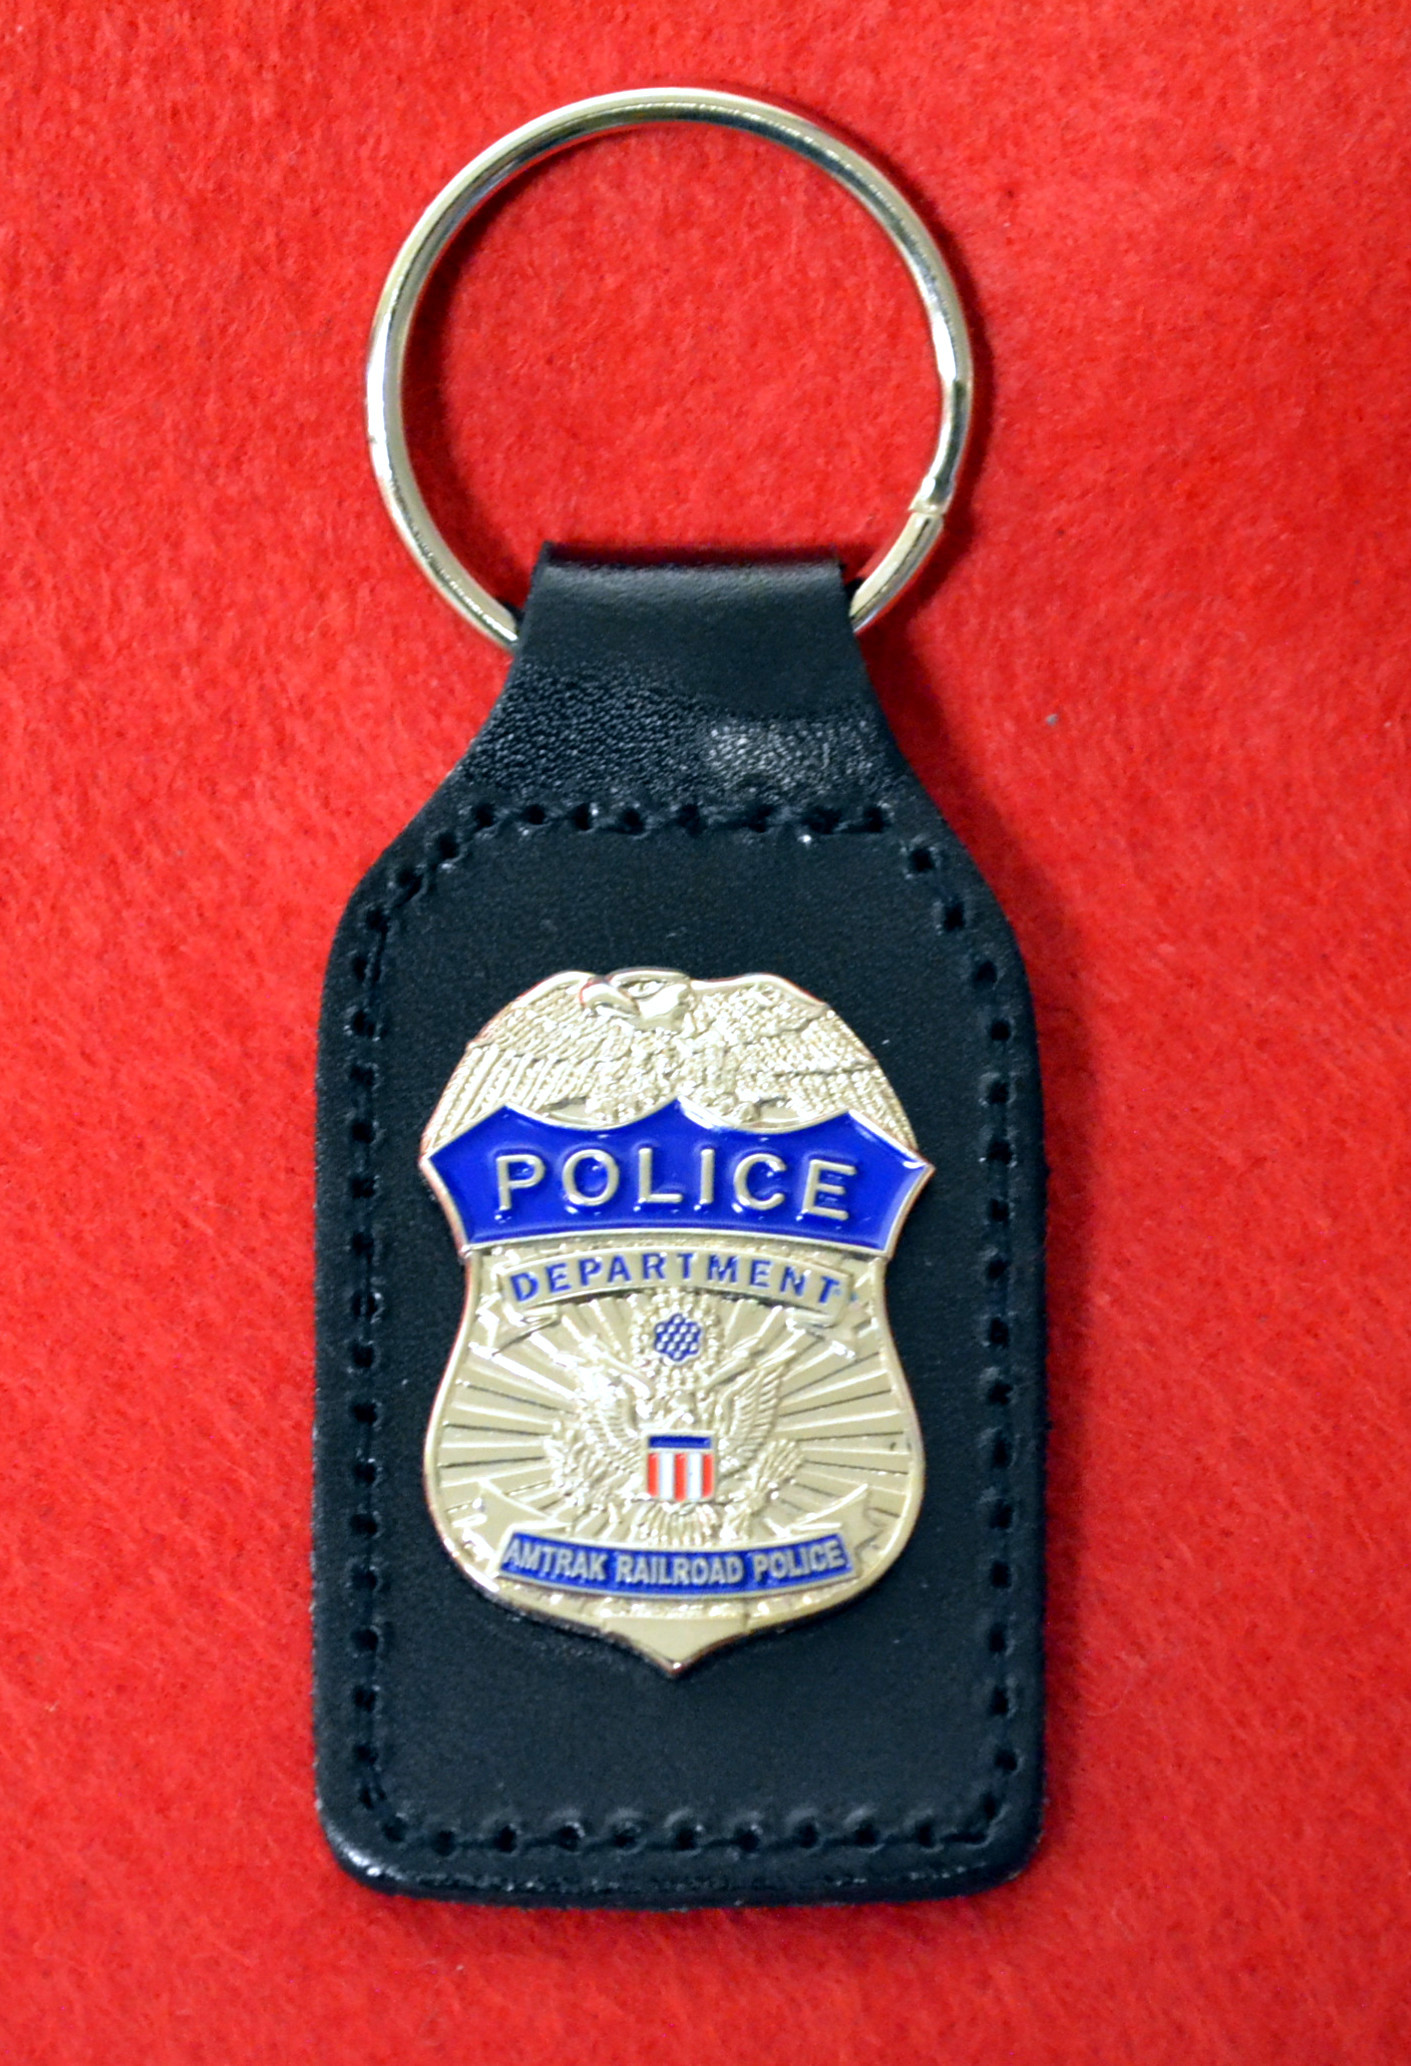 Amtrak Police Key Fob